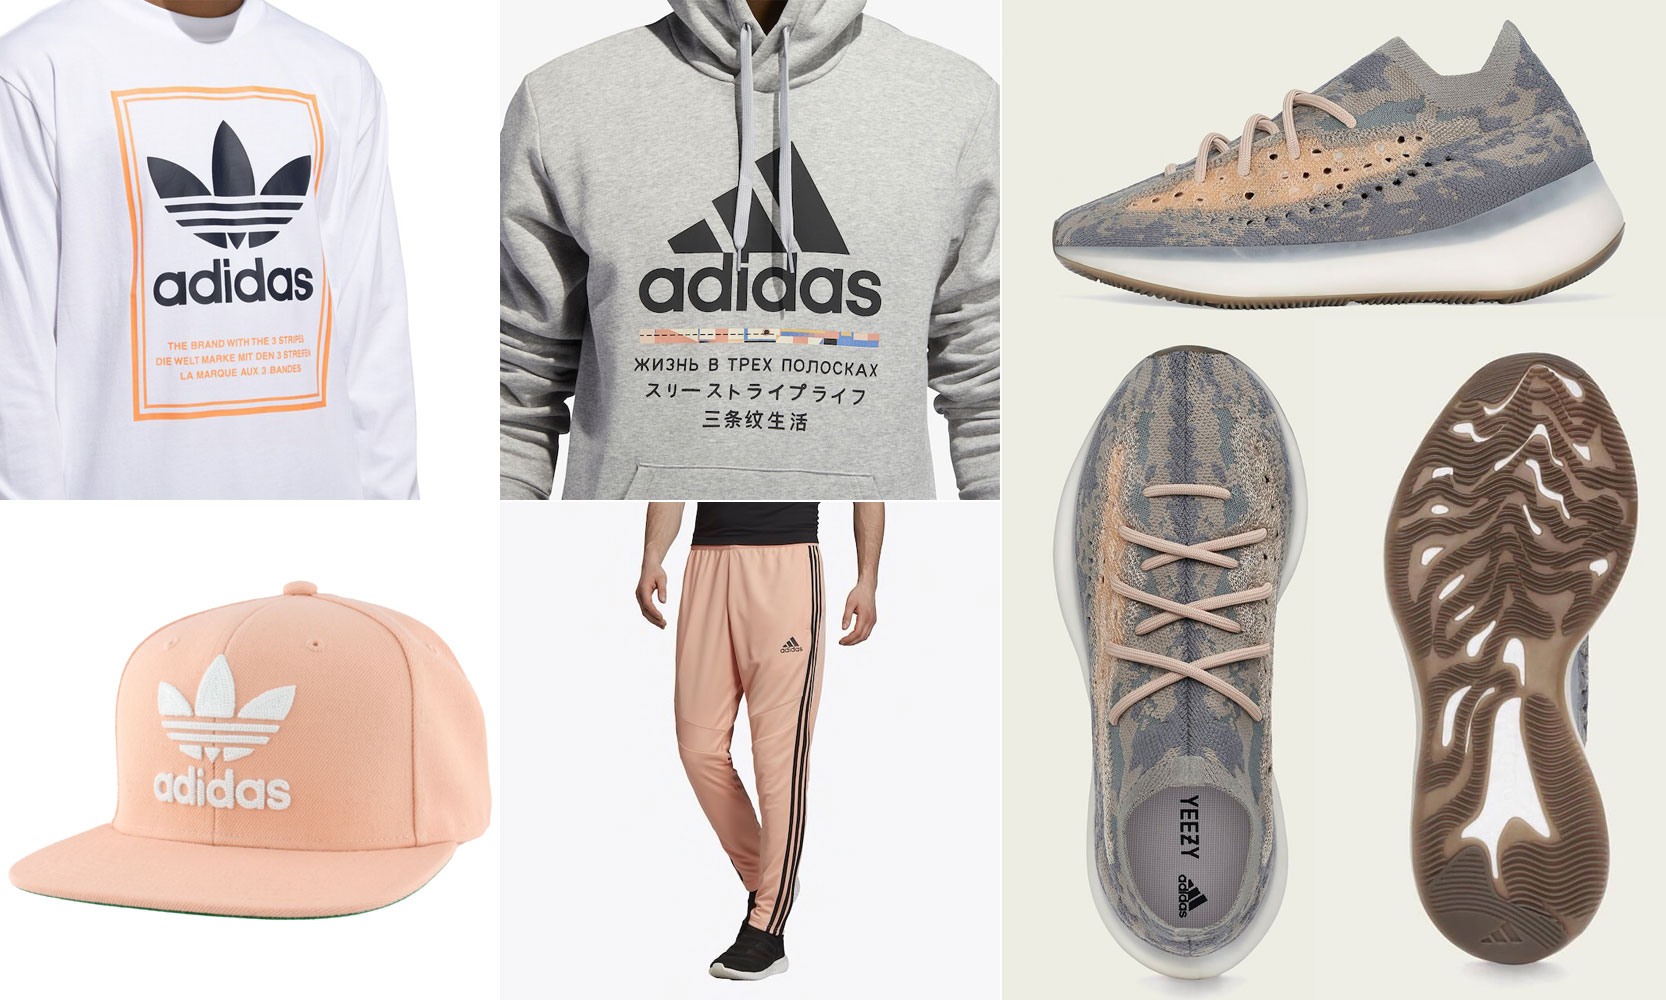 yeezy-boost-380-mist-clothing-outfits